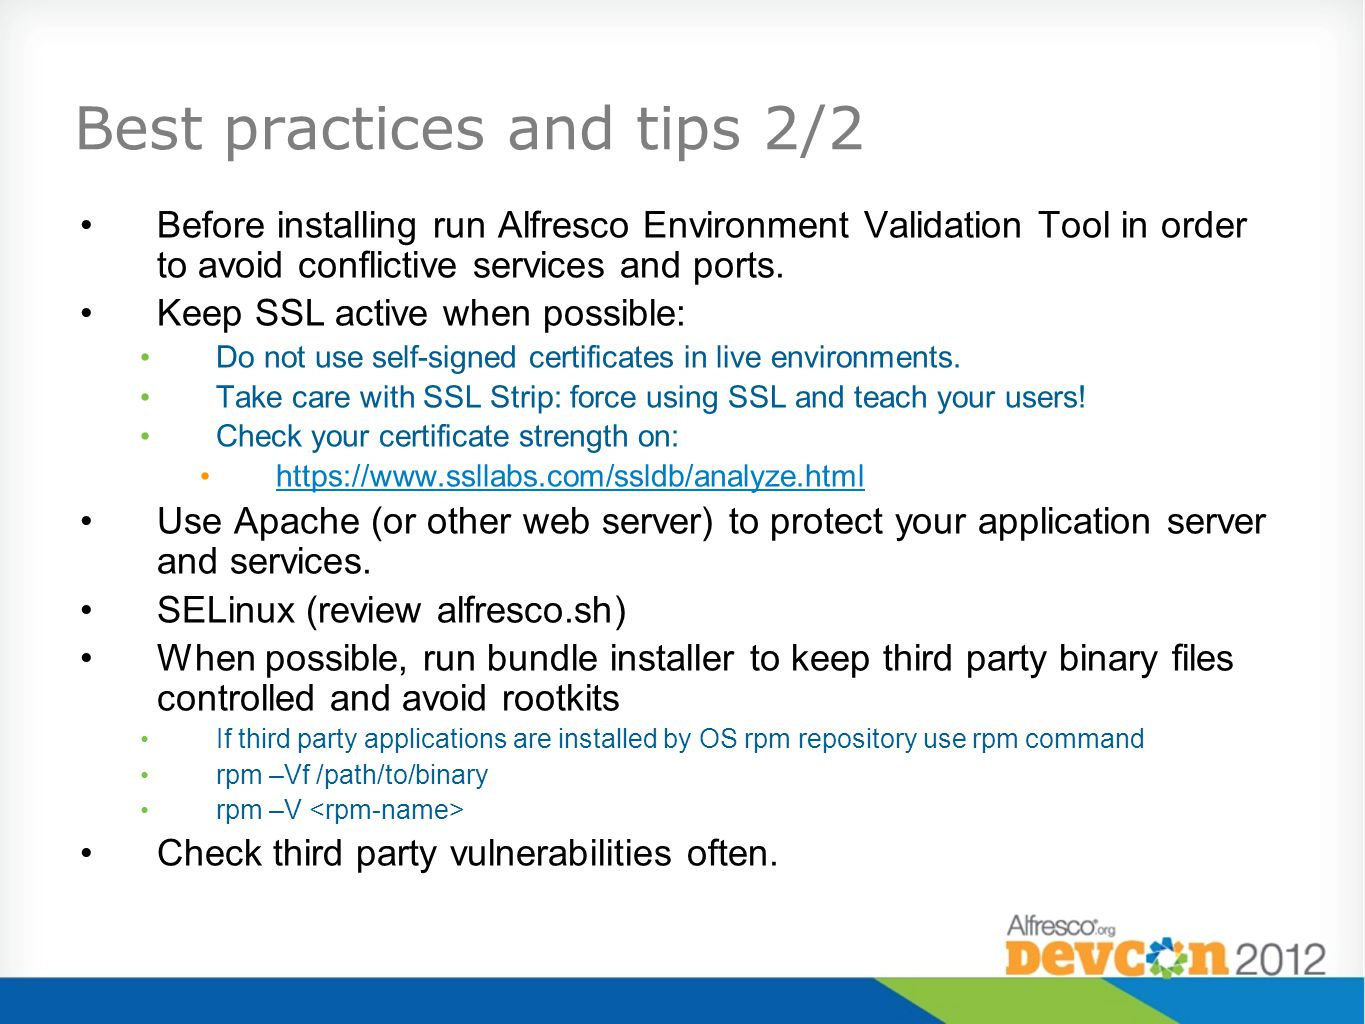 Best practices and tips 2/2